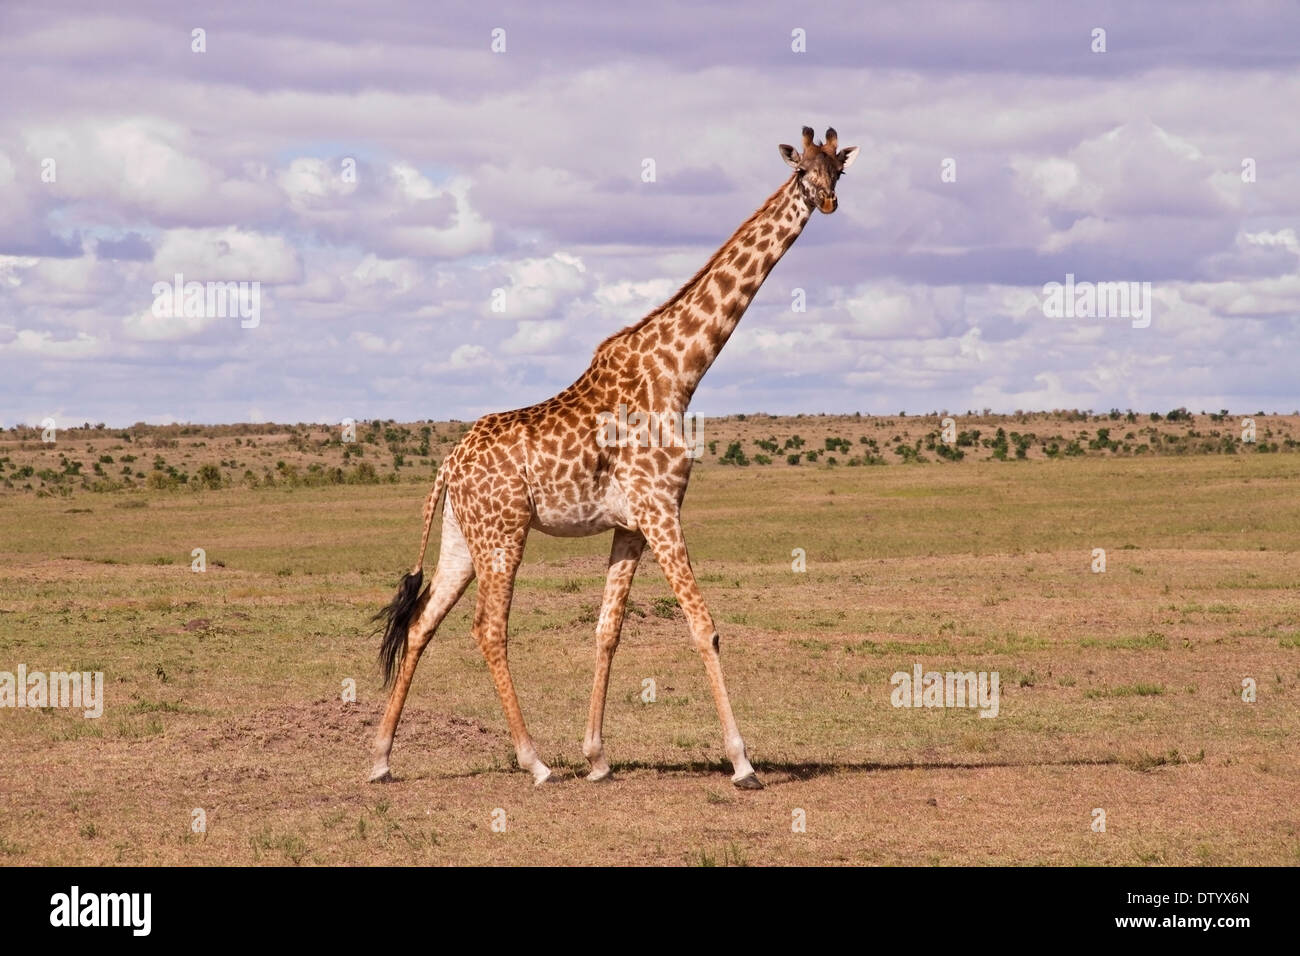 giraffe (Giraffa camelopardalis) adult walking on savanna, Kenya, East Africa - Stock Image